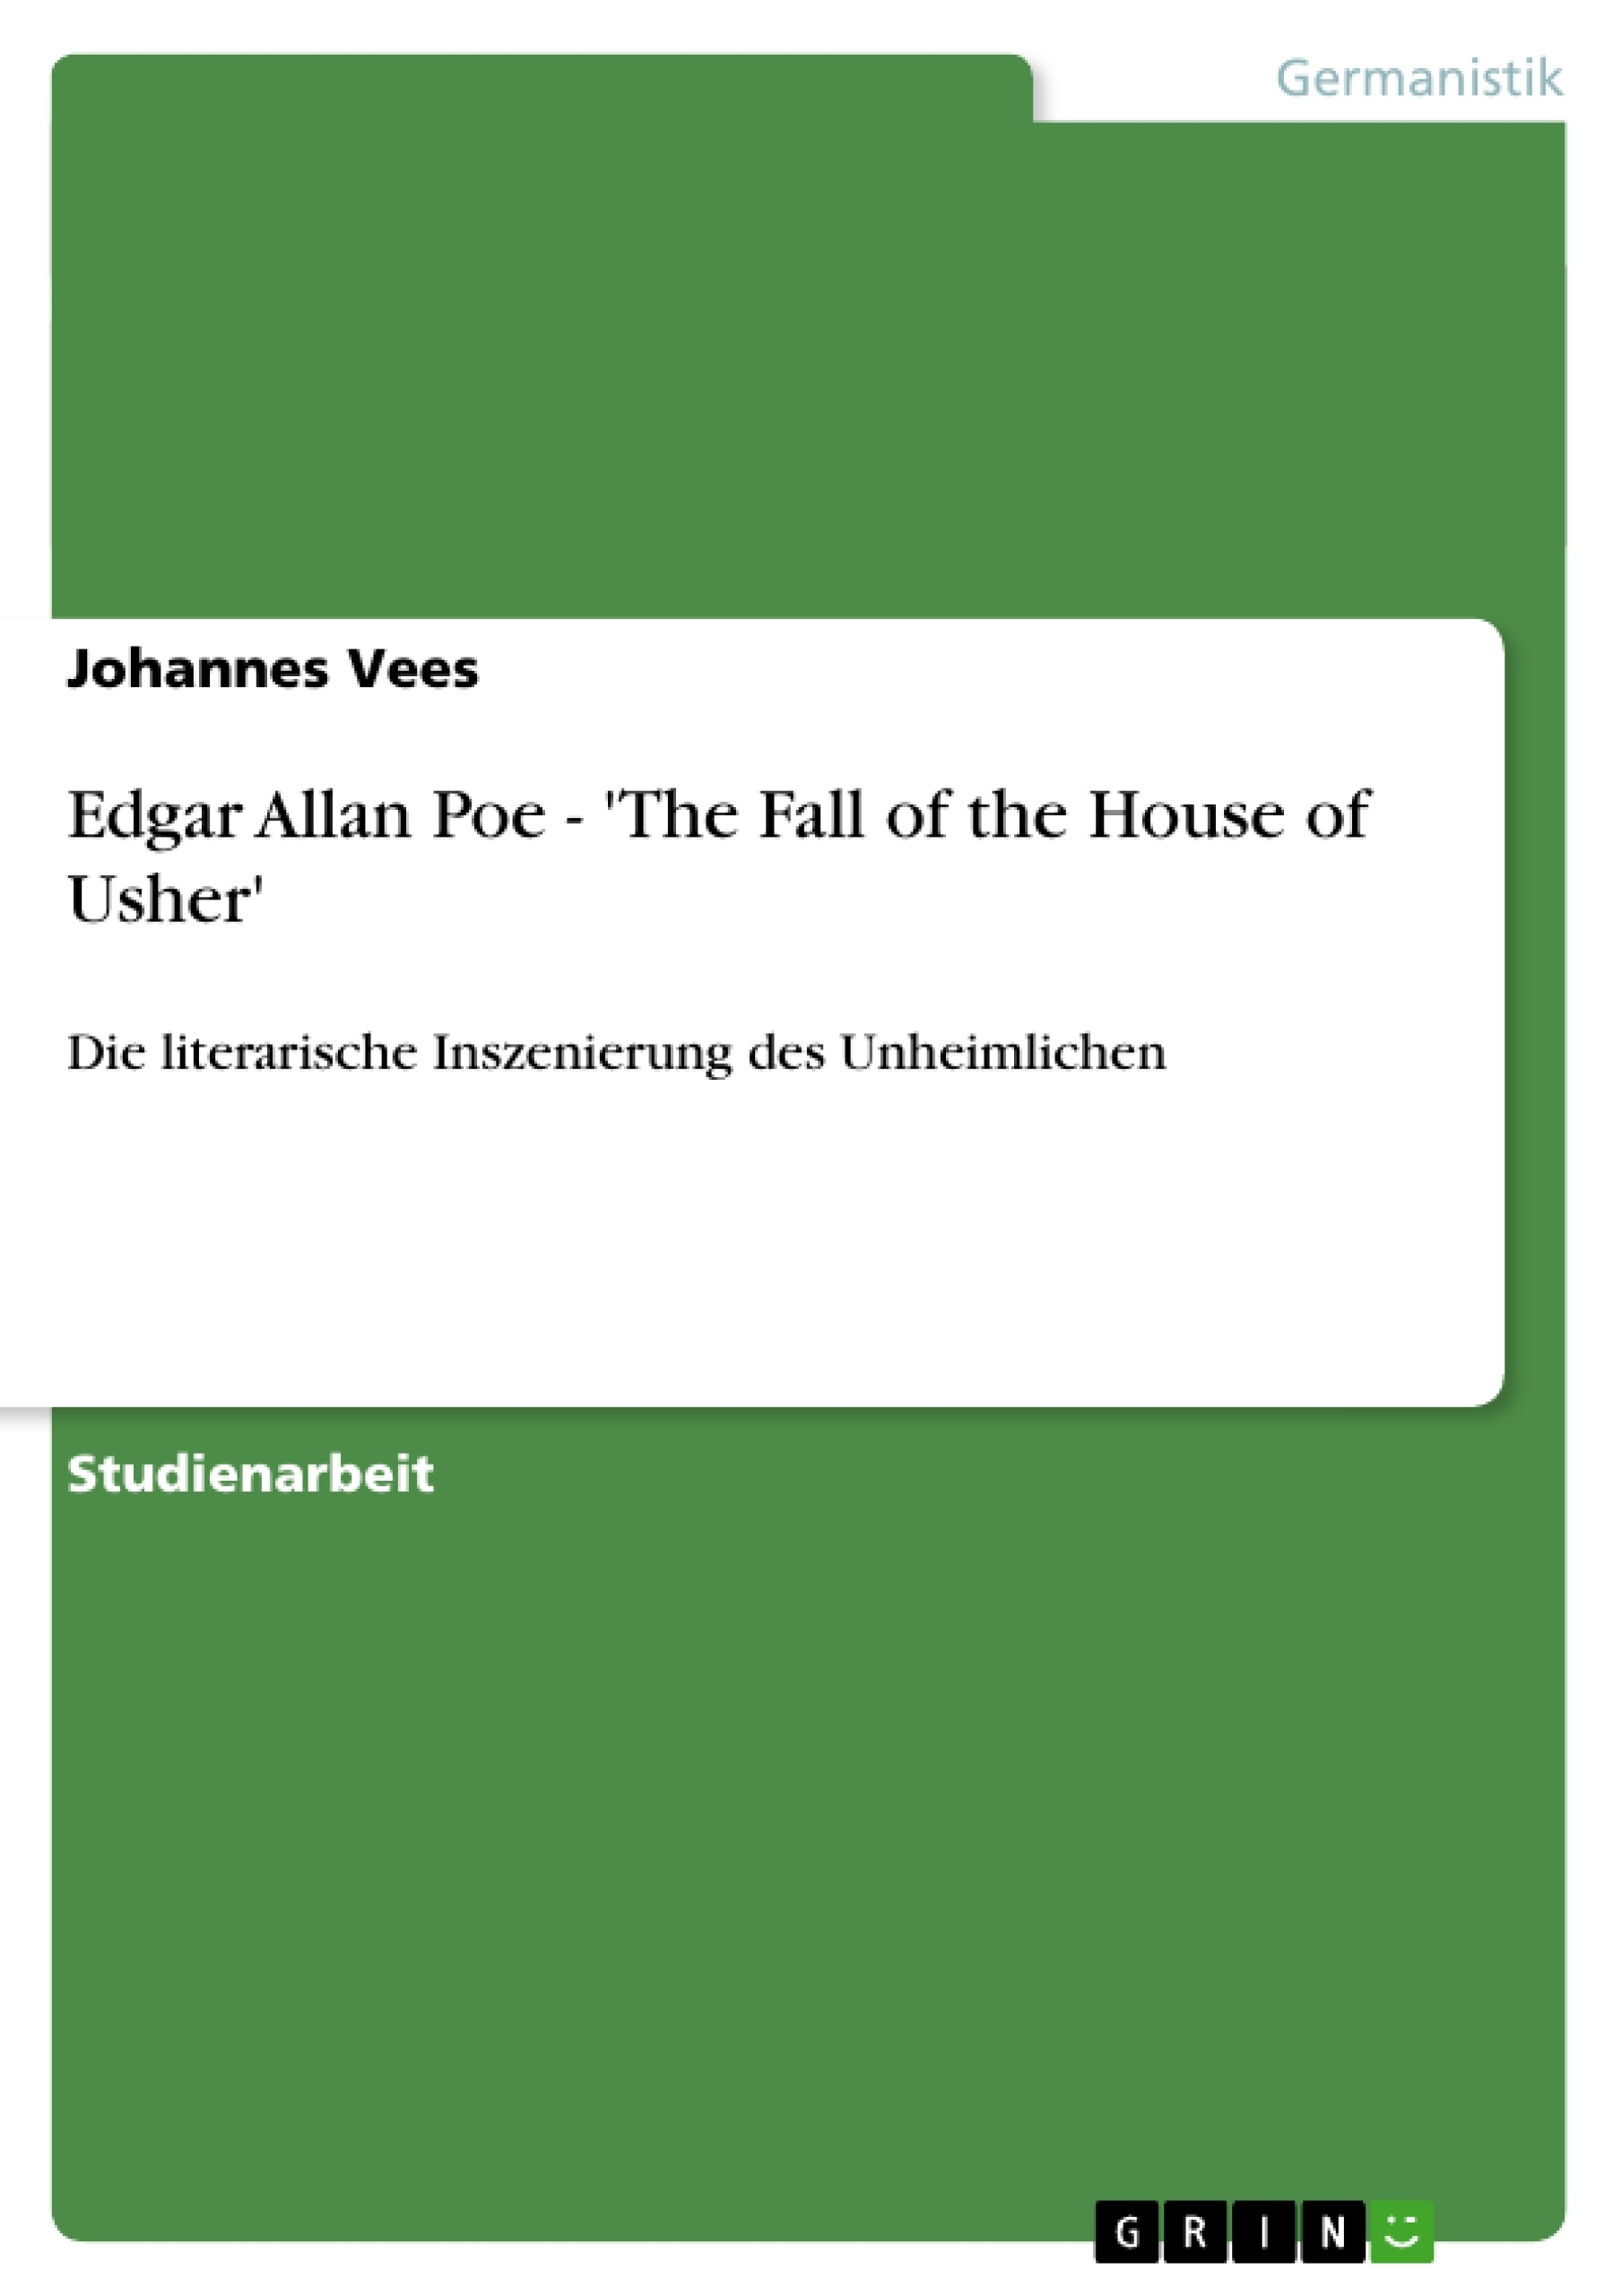 Edgar Allan Poe - \'The Fall of the House of Usher\' | Hausarbeiten ...